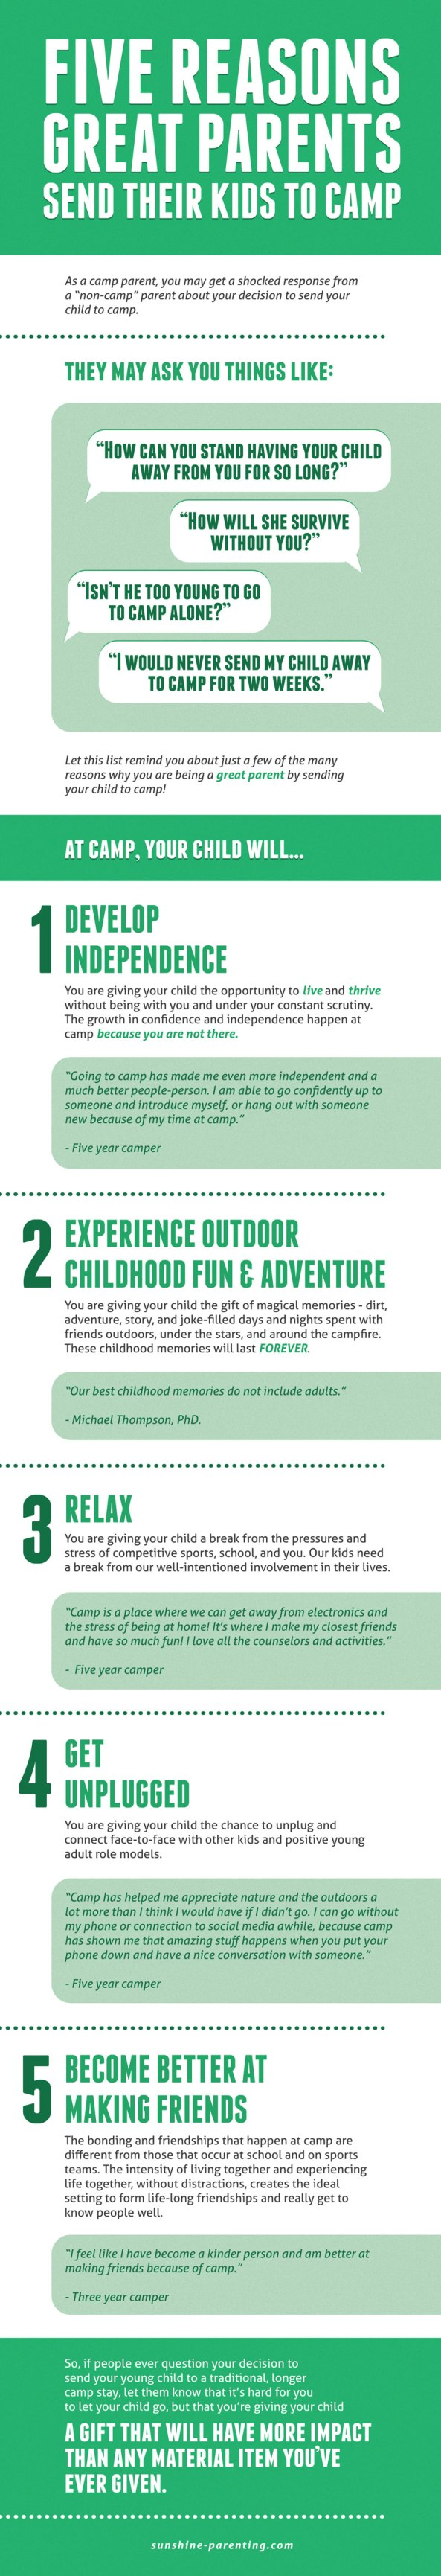 DEVELOP INDEPENDENCE -  EXPERIENCE OUTDOOR CHILDHOOD FUN & ADVENTURE - RELAX - GET UNPLUGGED - BECOME BETTER AT MAKING AND KEEPING FRIENDS